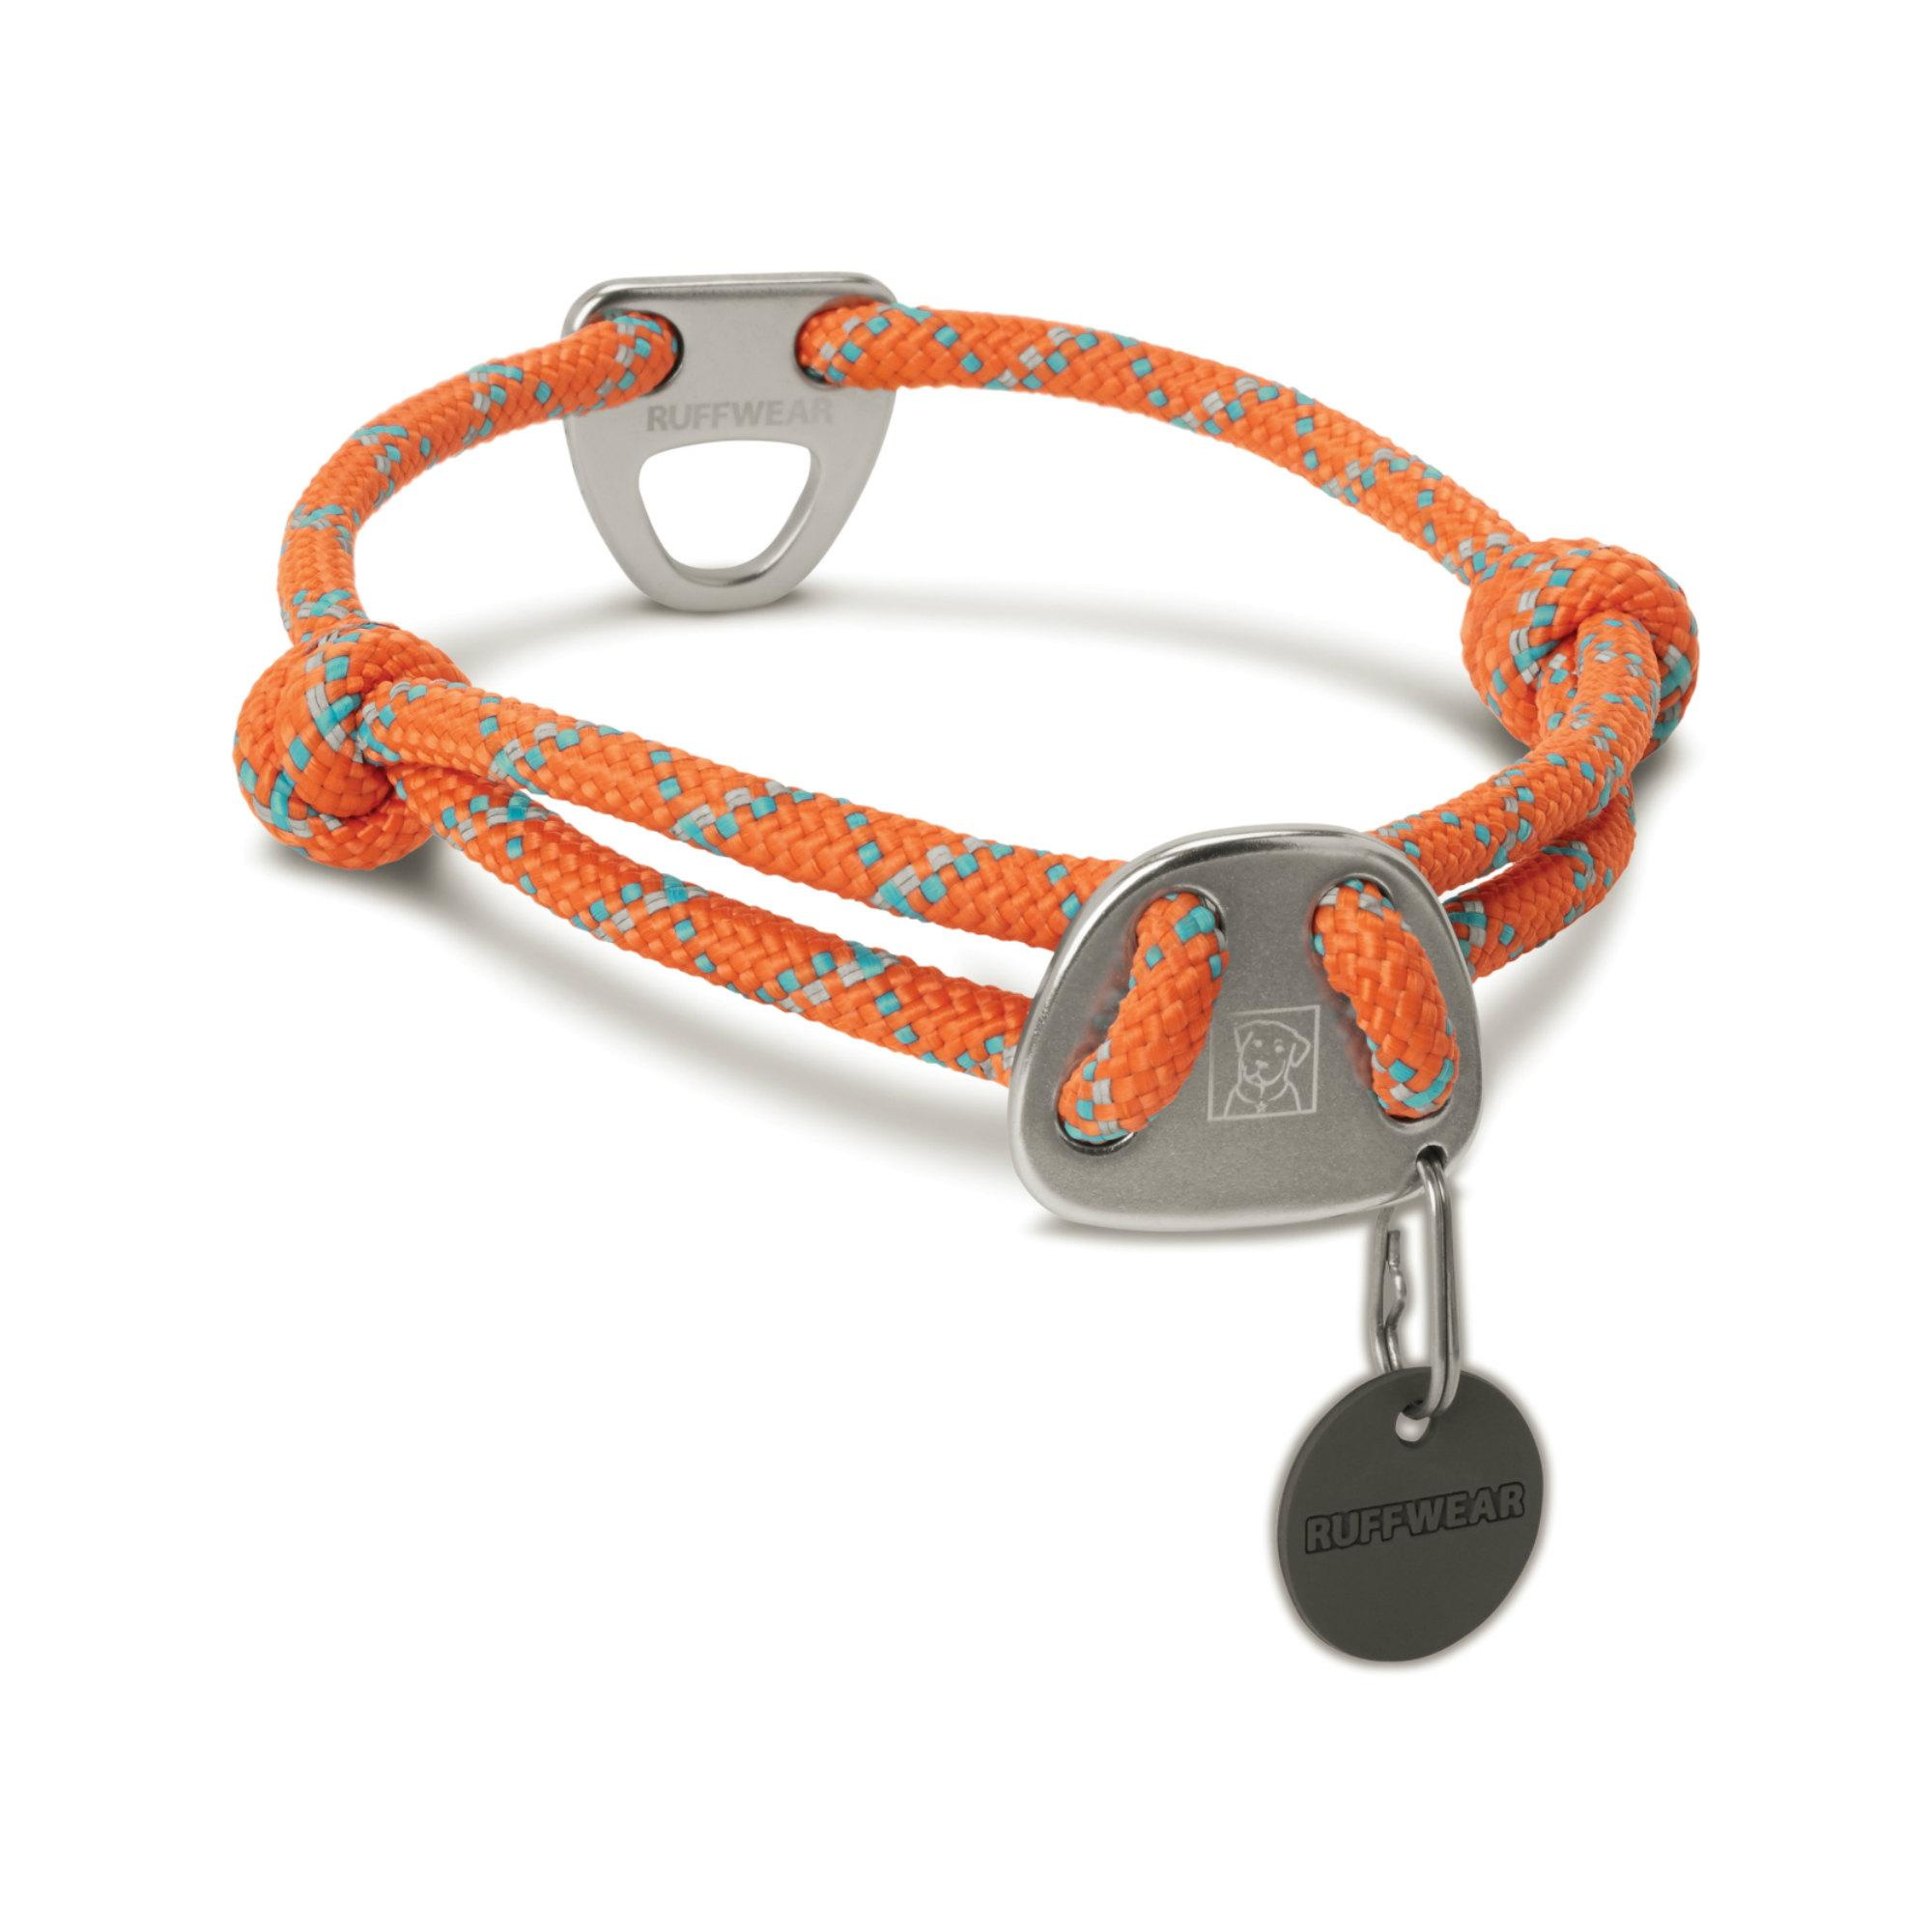 Knot-A-Collar Dog Collar by RuffWear - Pumpkin Orange